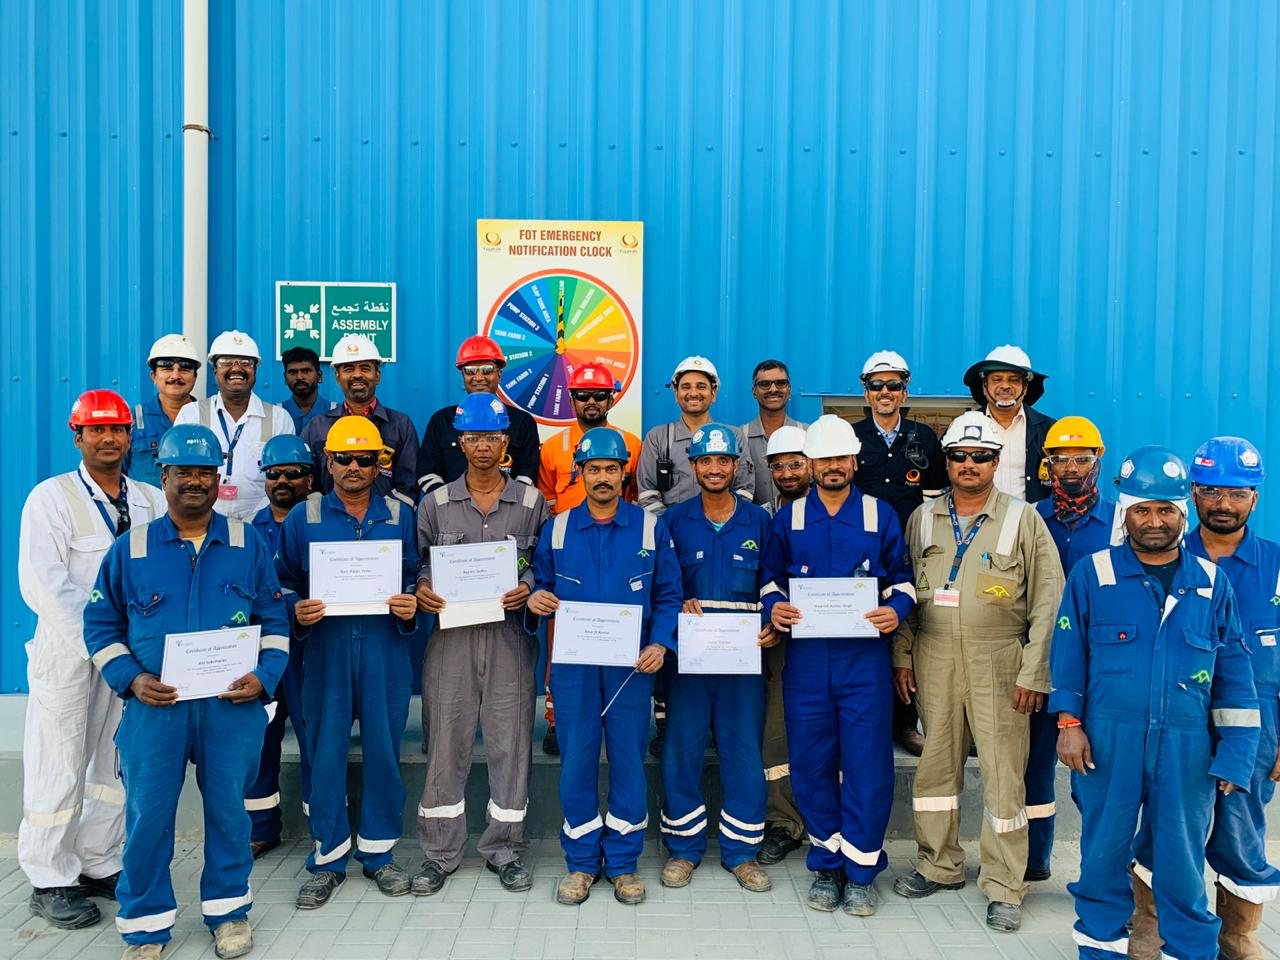 Safety award 2019